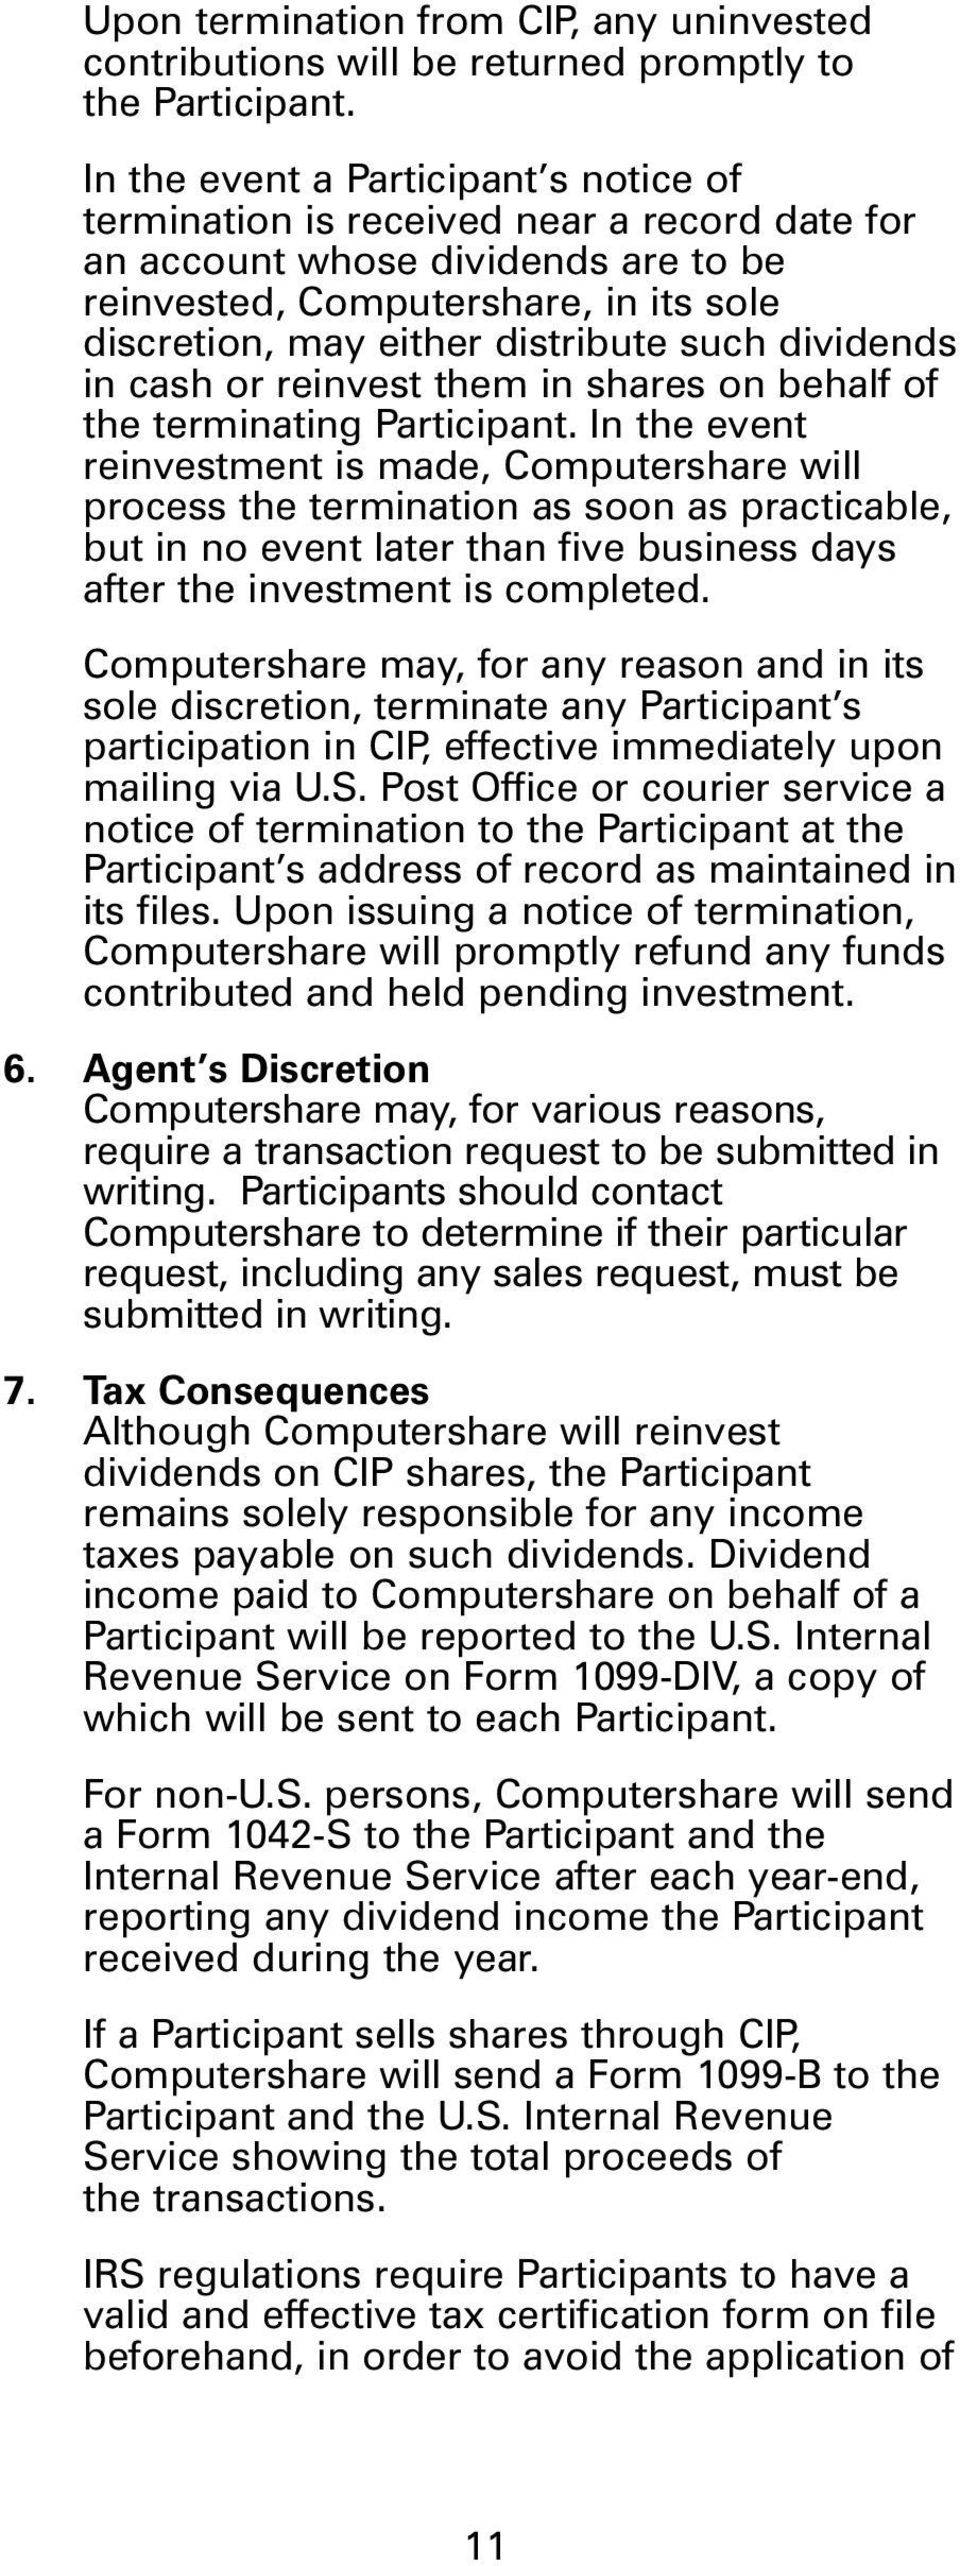 such dividends in cash or reinvest them in shares on behalf of the terminating Participant.